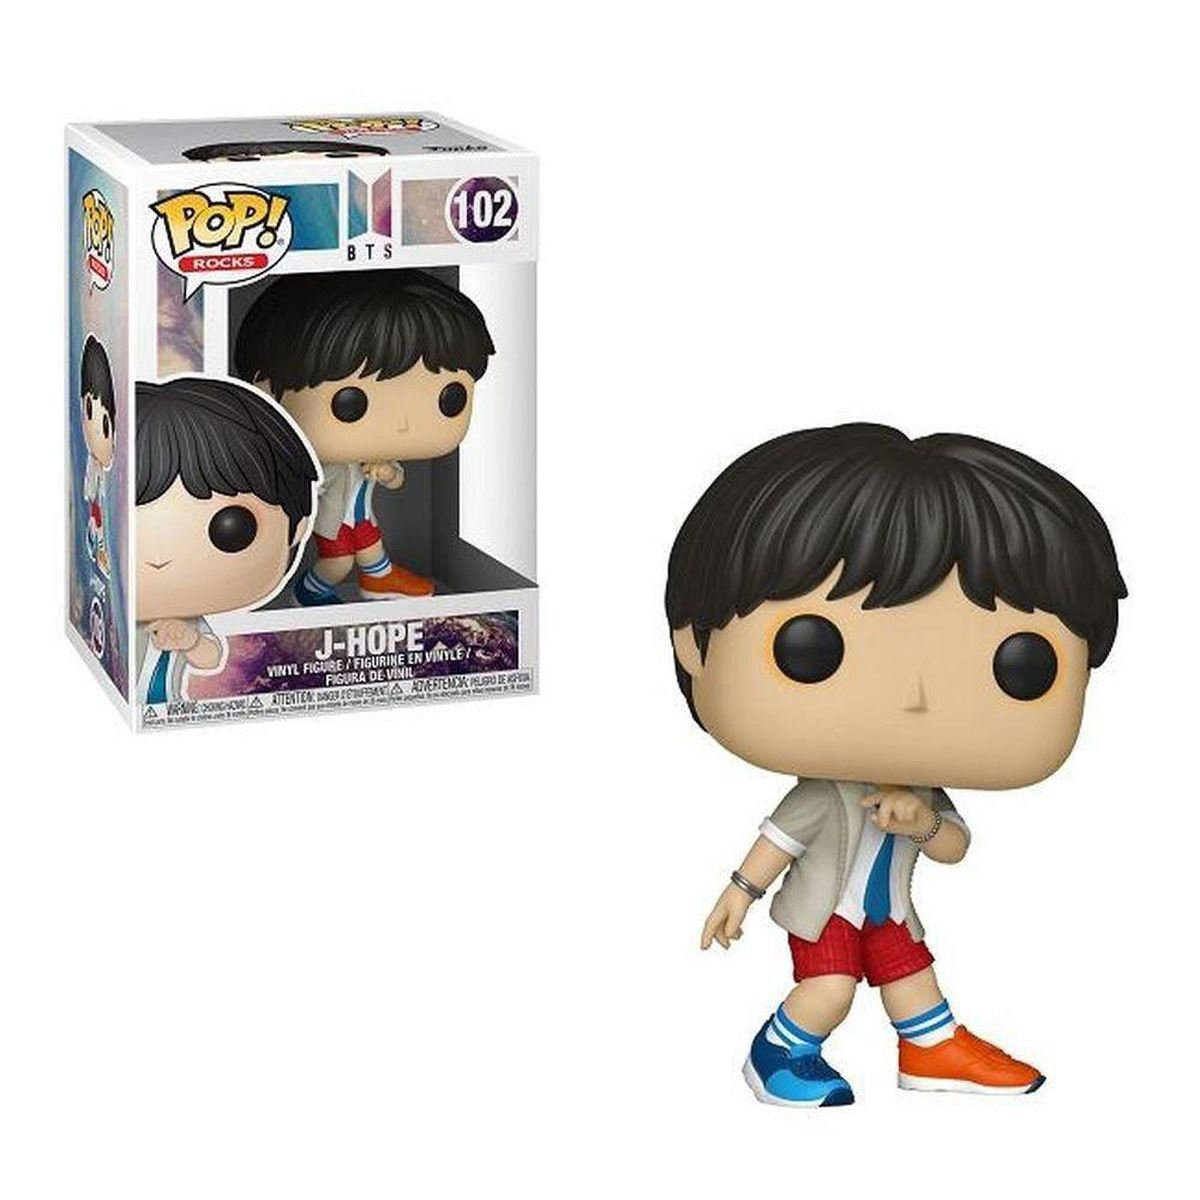 Funko Pop J-Hope BTS